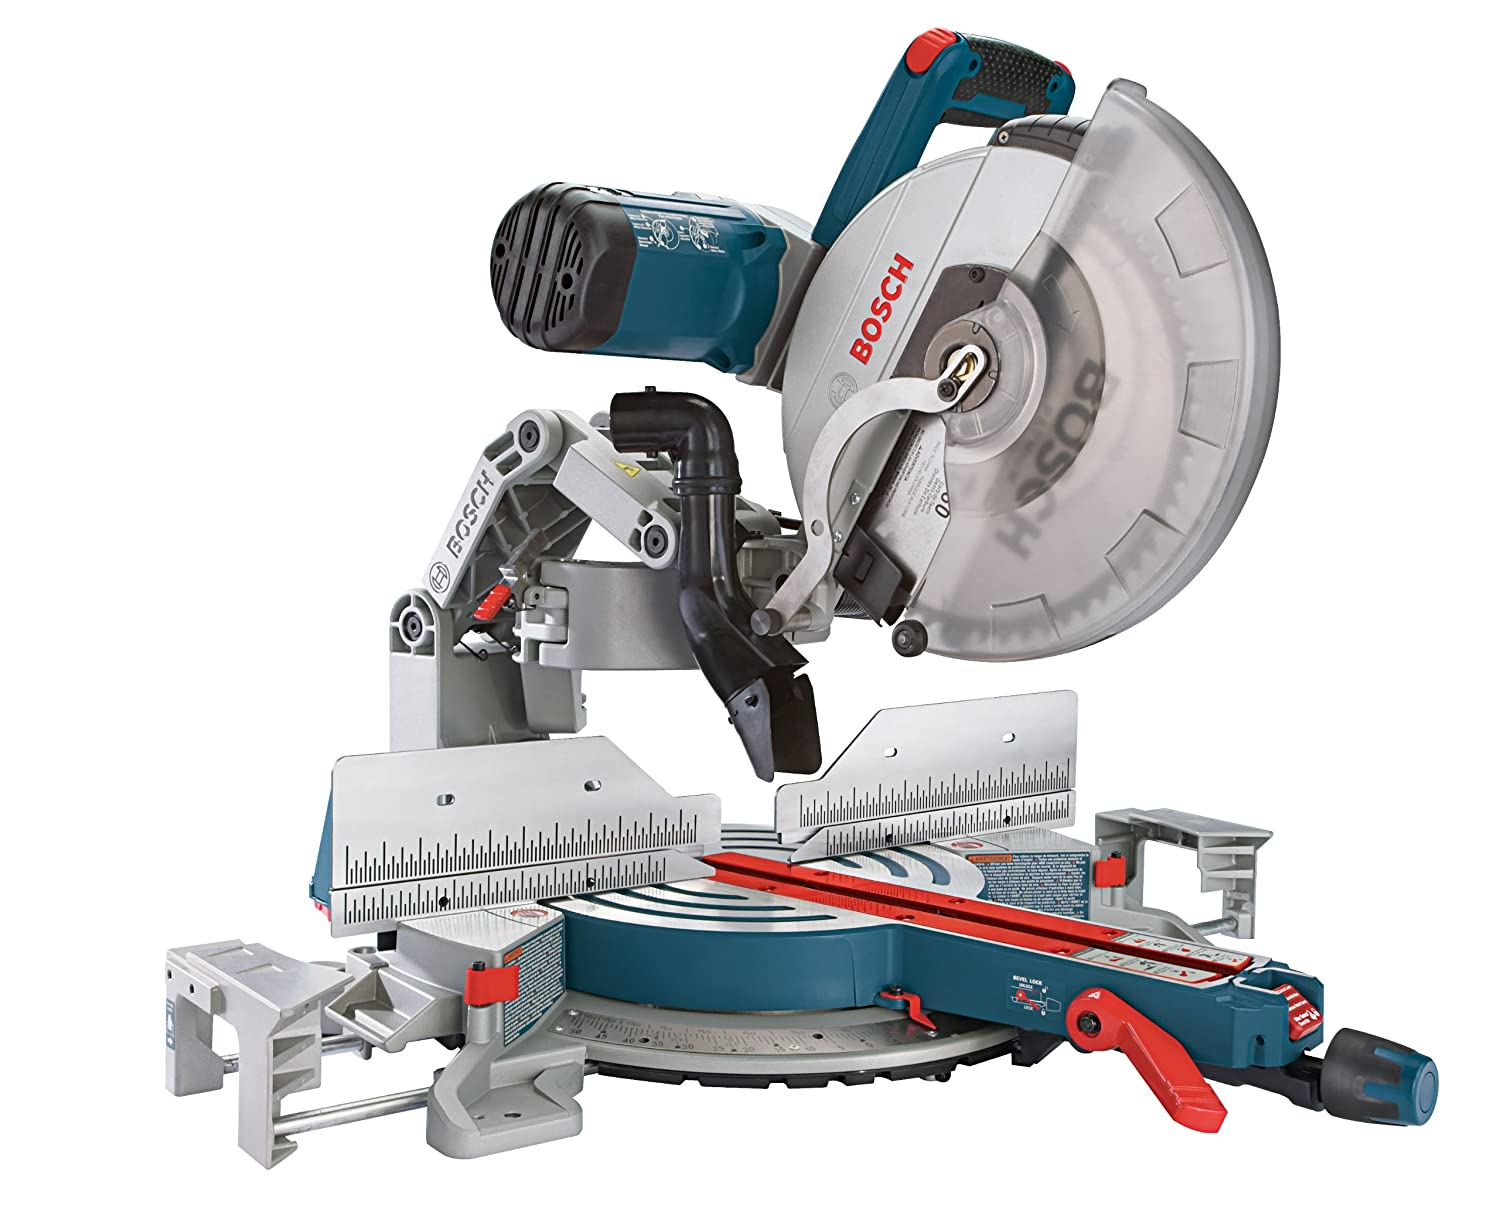 Dual-Bevel Glide Miter Saw GCM12SD